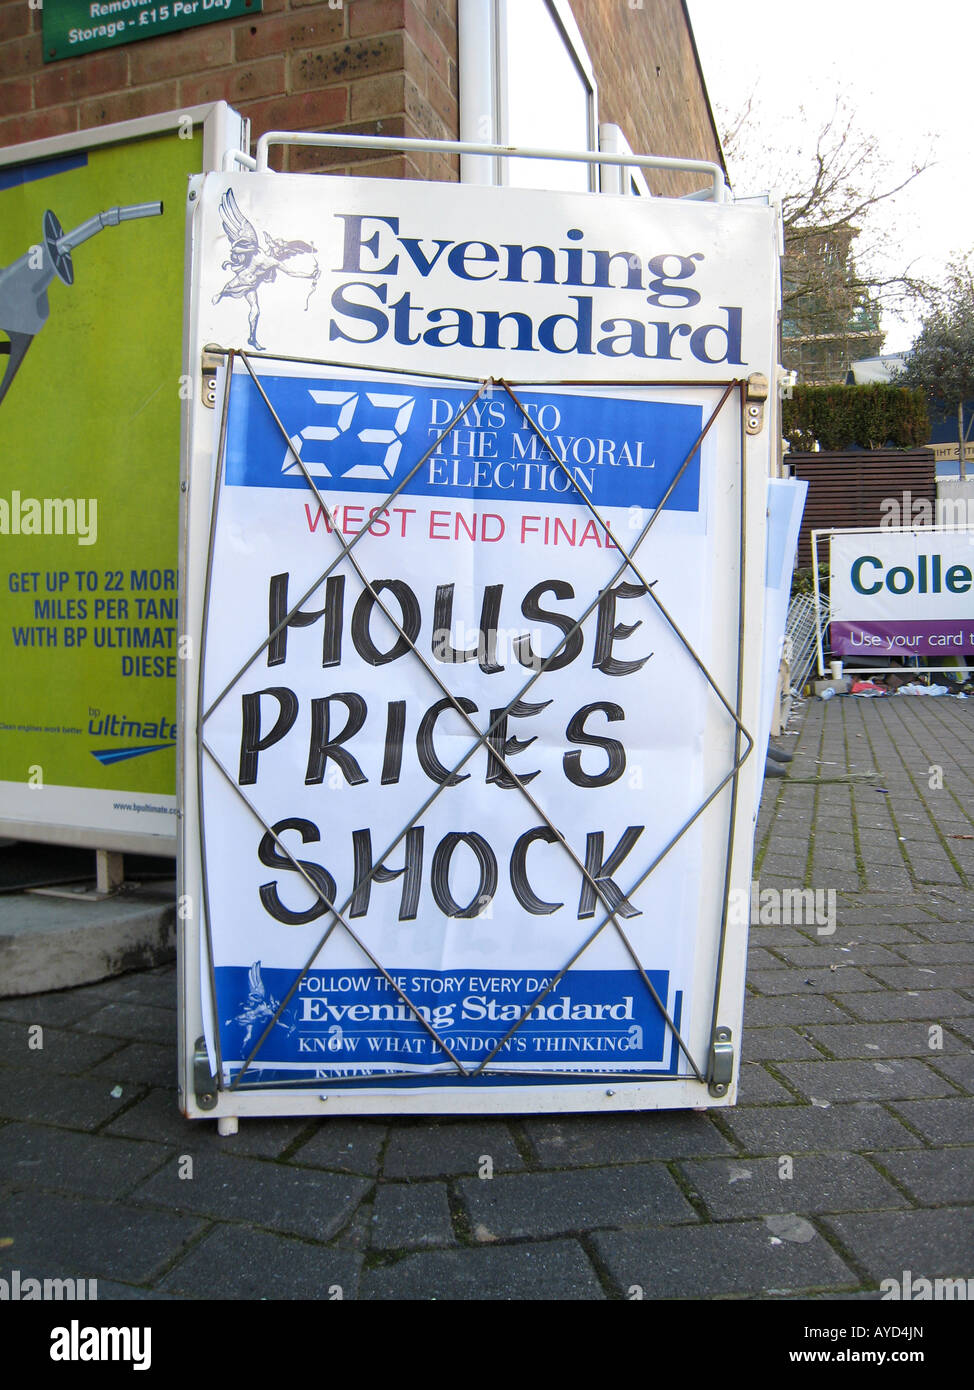 HOUSE PRICES SHOCK headline 8th APRIL 2008 Evening Standard newspaper board in London UK housing market - Stock Image